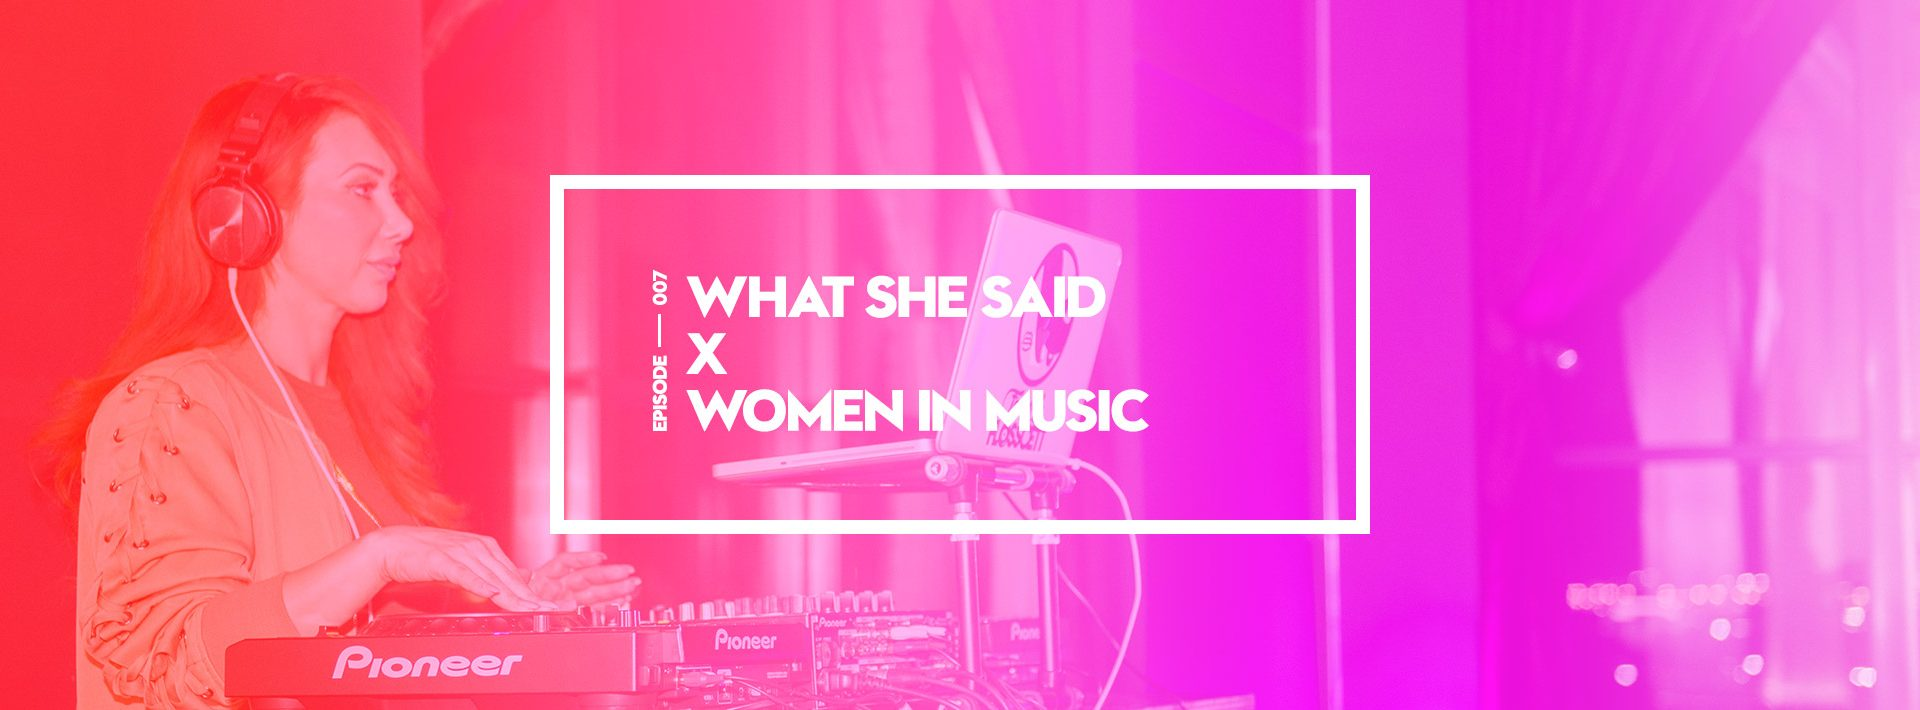 w-hotels-women-in-music